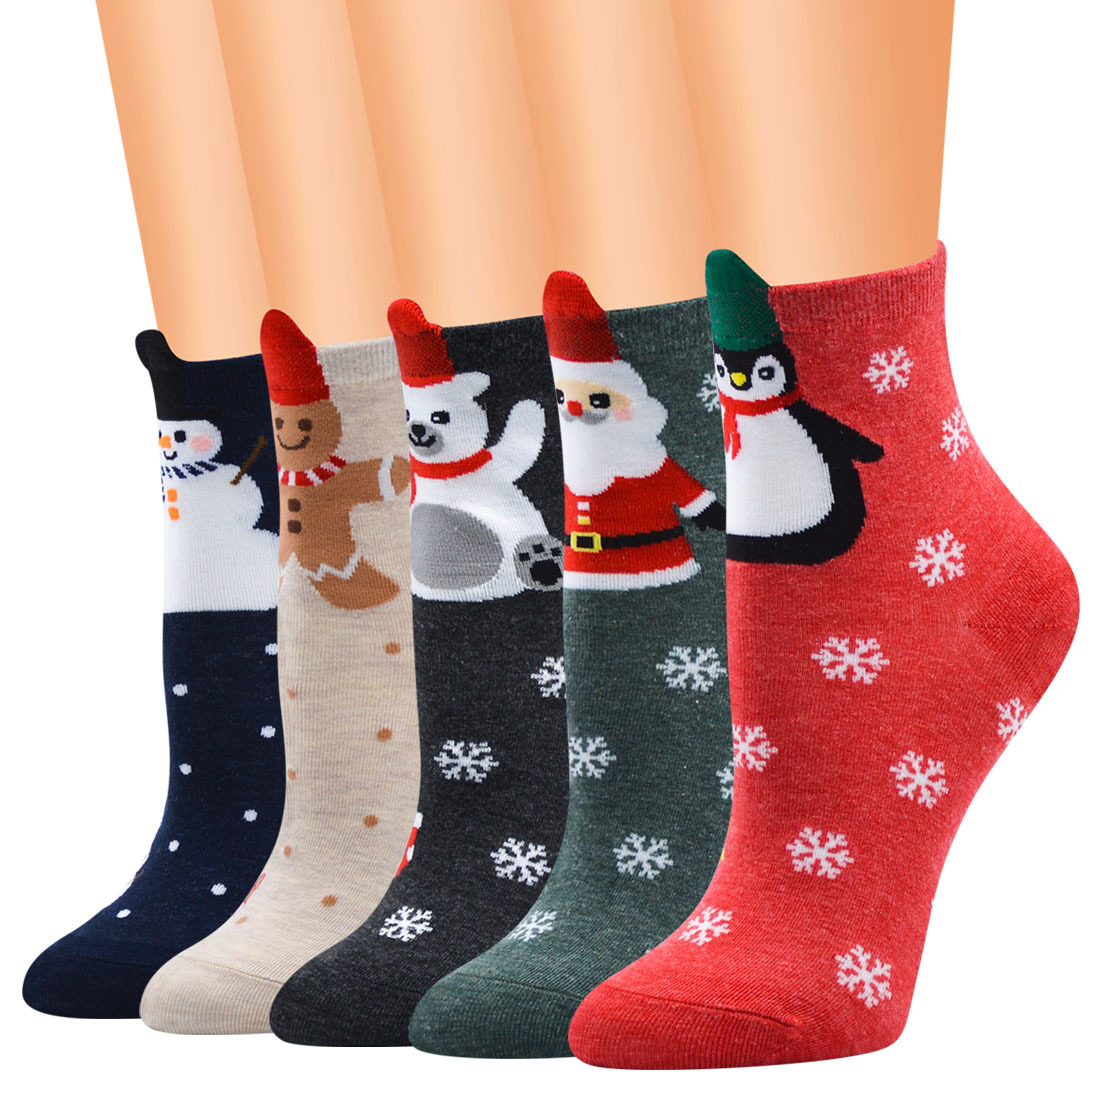 3D Christmas Socks Carnival Women Winter Socks Penguin Bear Celebration Christmas Gift Warm Soft Comfortable Cotton So